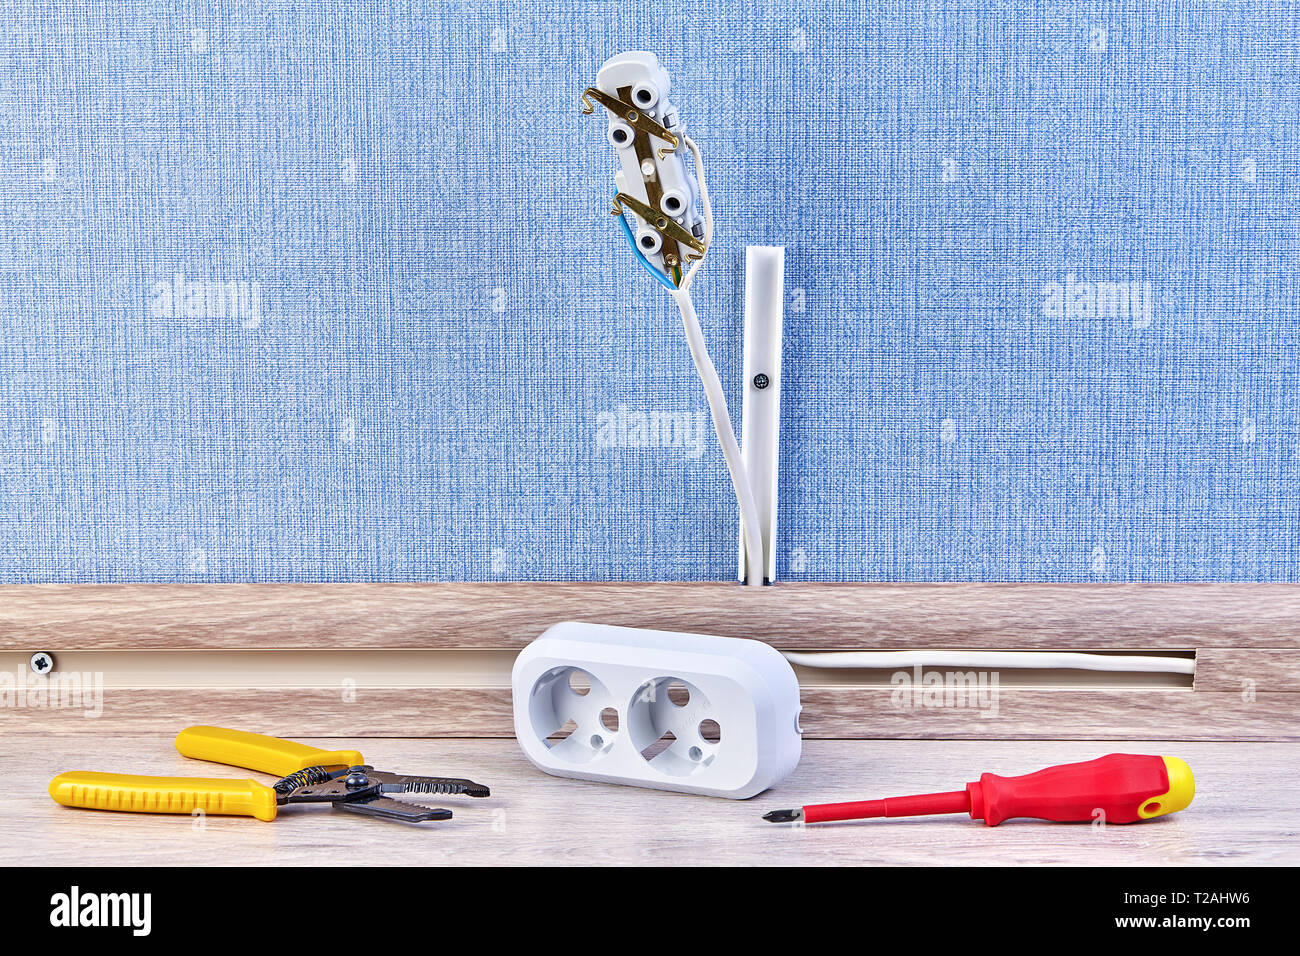 Swell Wiring Tools Stock Photos Wiring Tools Stock Images Alamy Wiring 101 Akebretraxxcnl